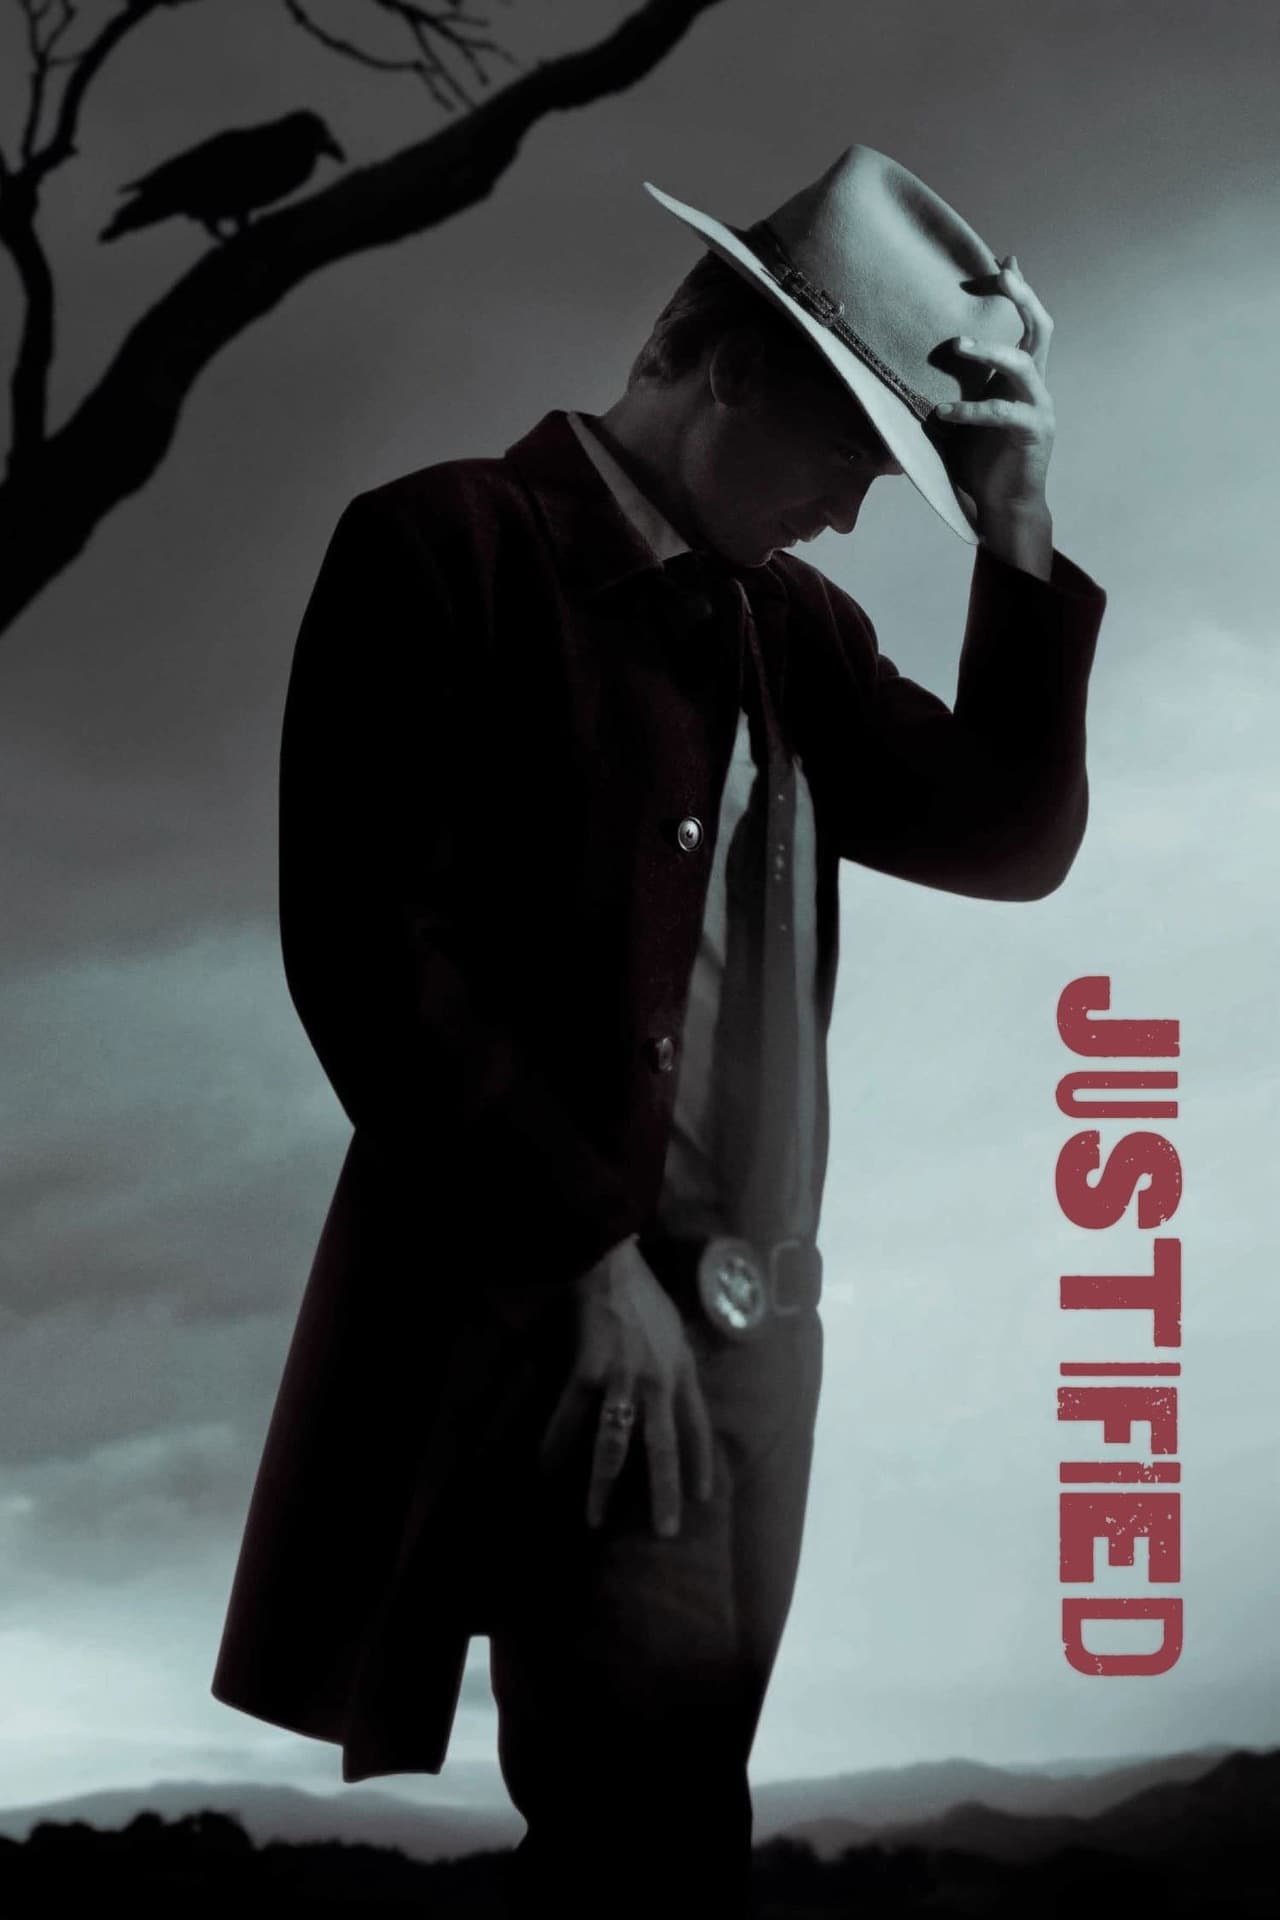 Justified (season 2)